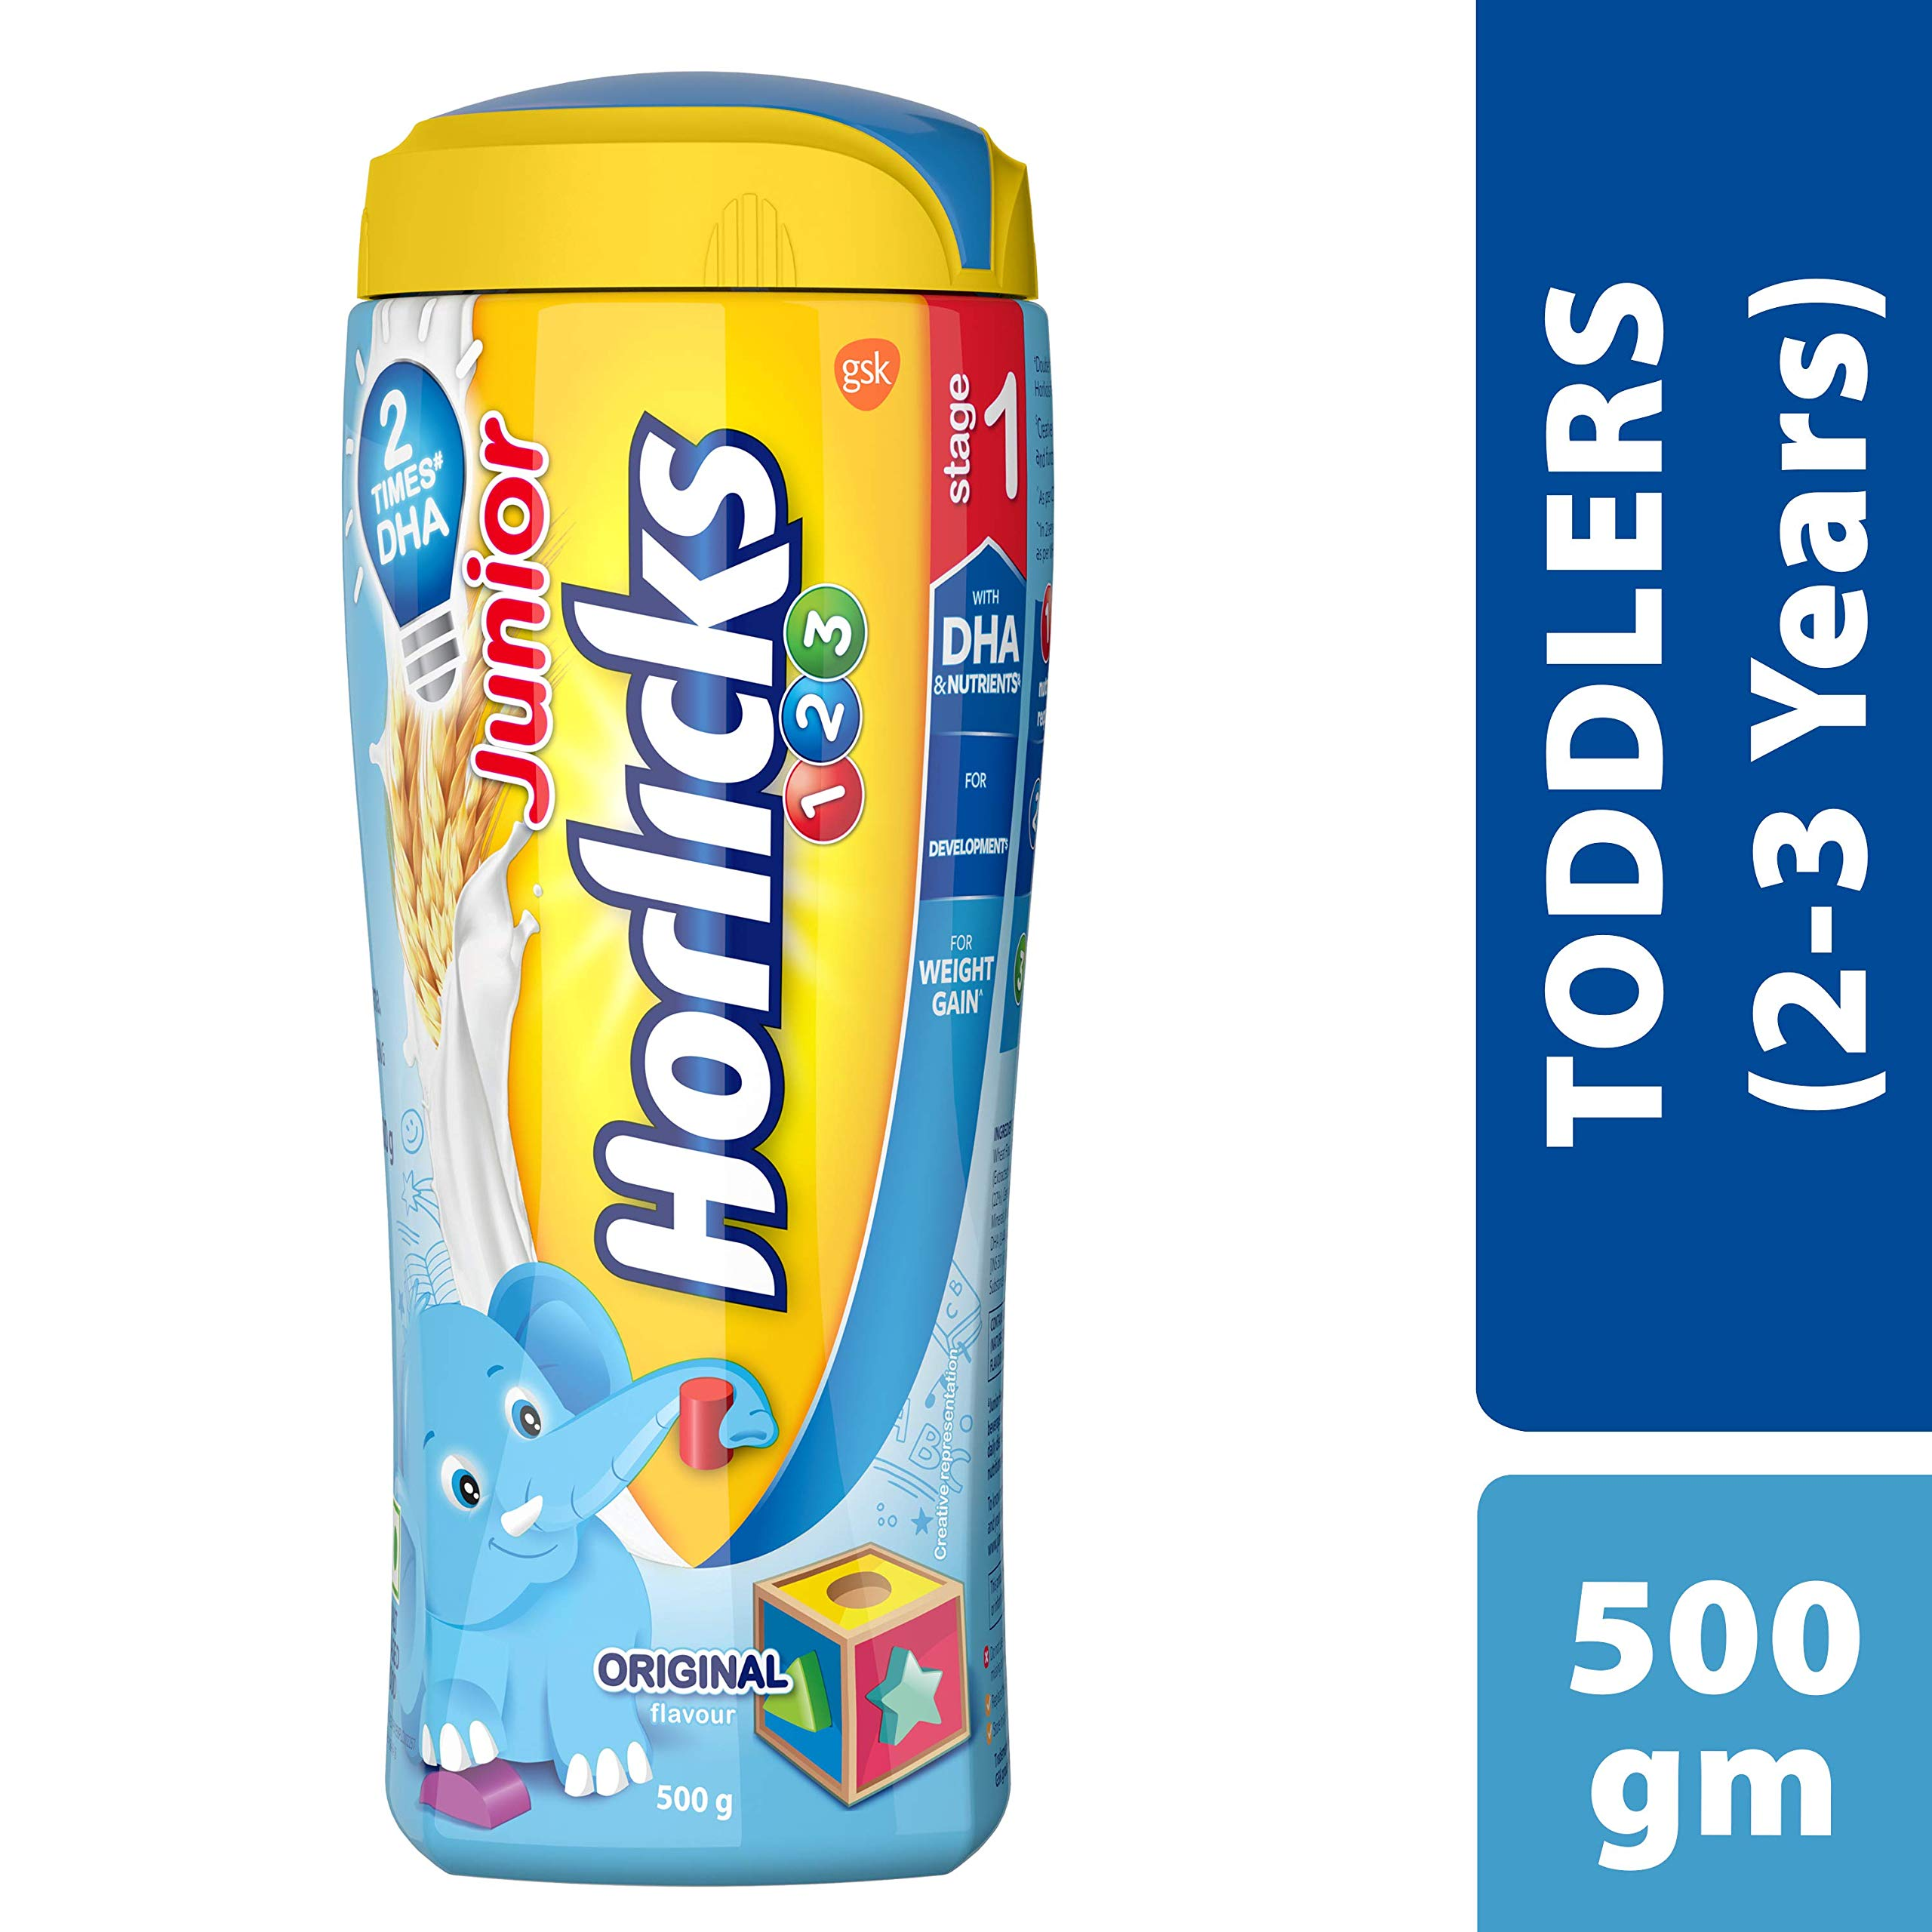 Horlicks Junior Stage 1 Health and Nutrition drink - 500g (2-3 years, Original flavor) product image